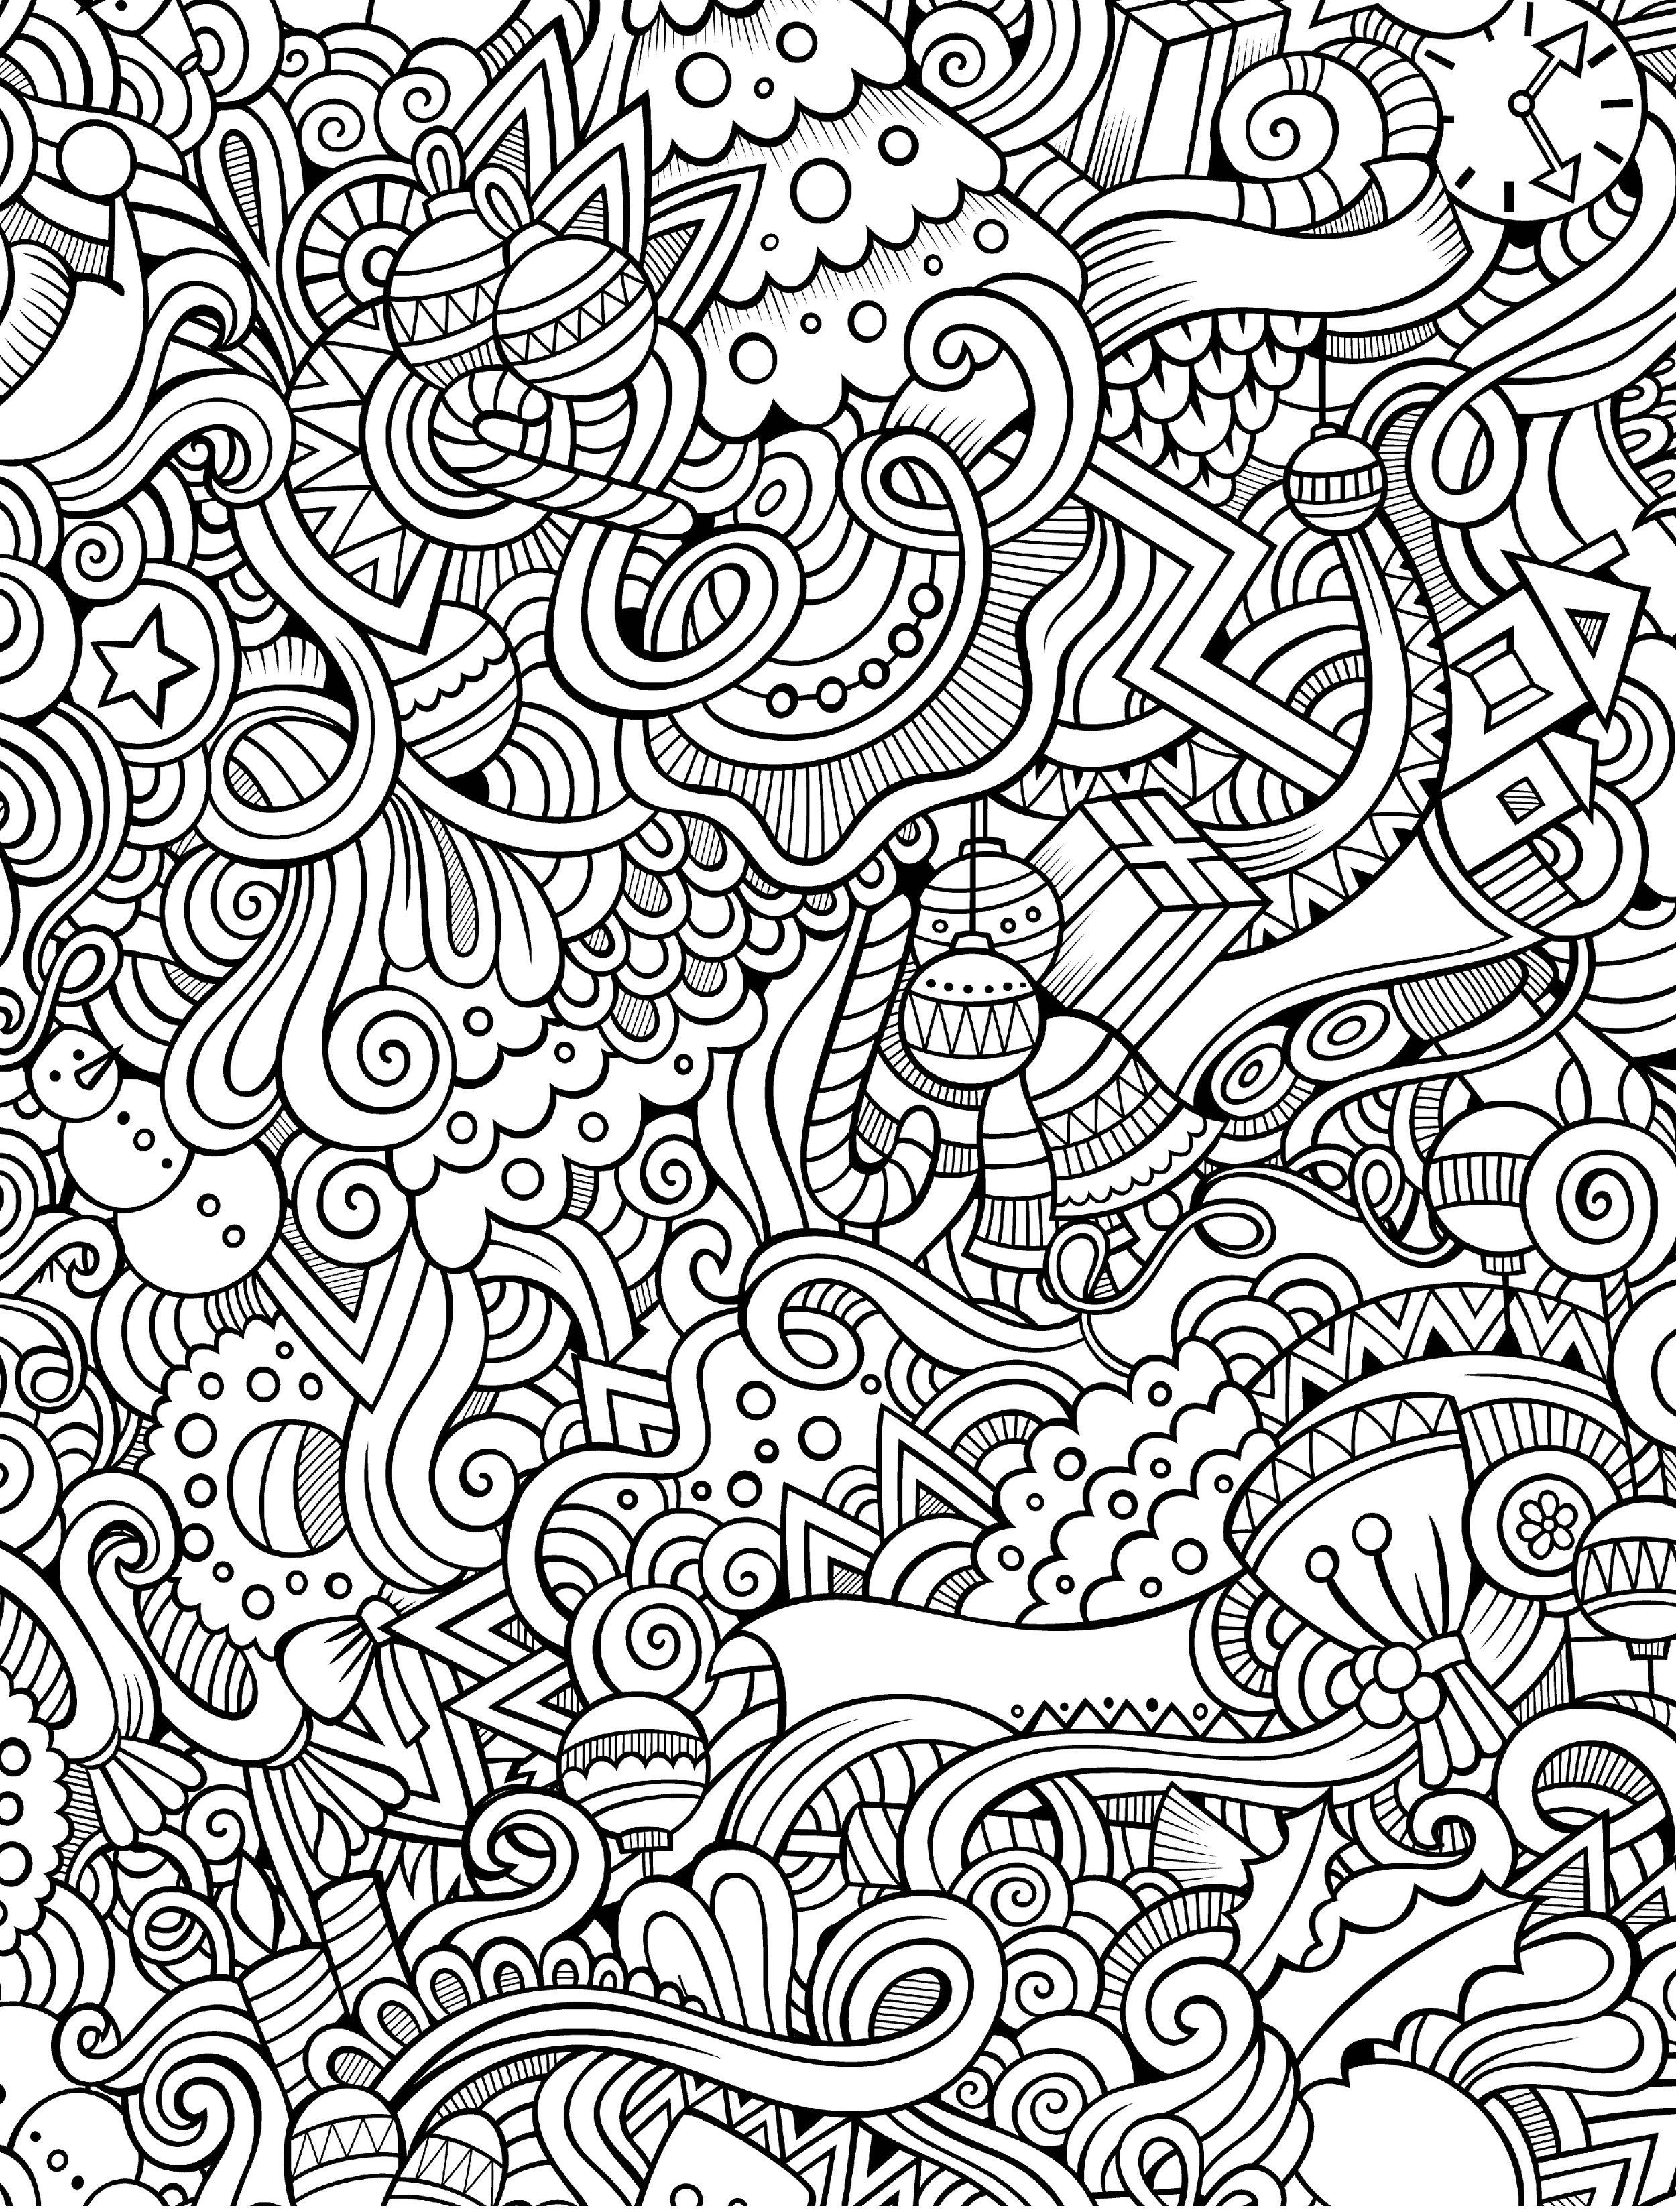 Coloring ~ Coloring Excelent Art For Adults Book More Good Vibes - Free Printable Coloring Books For Adults